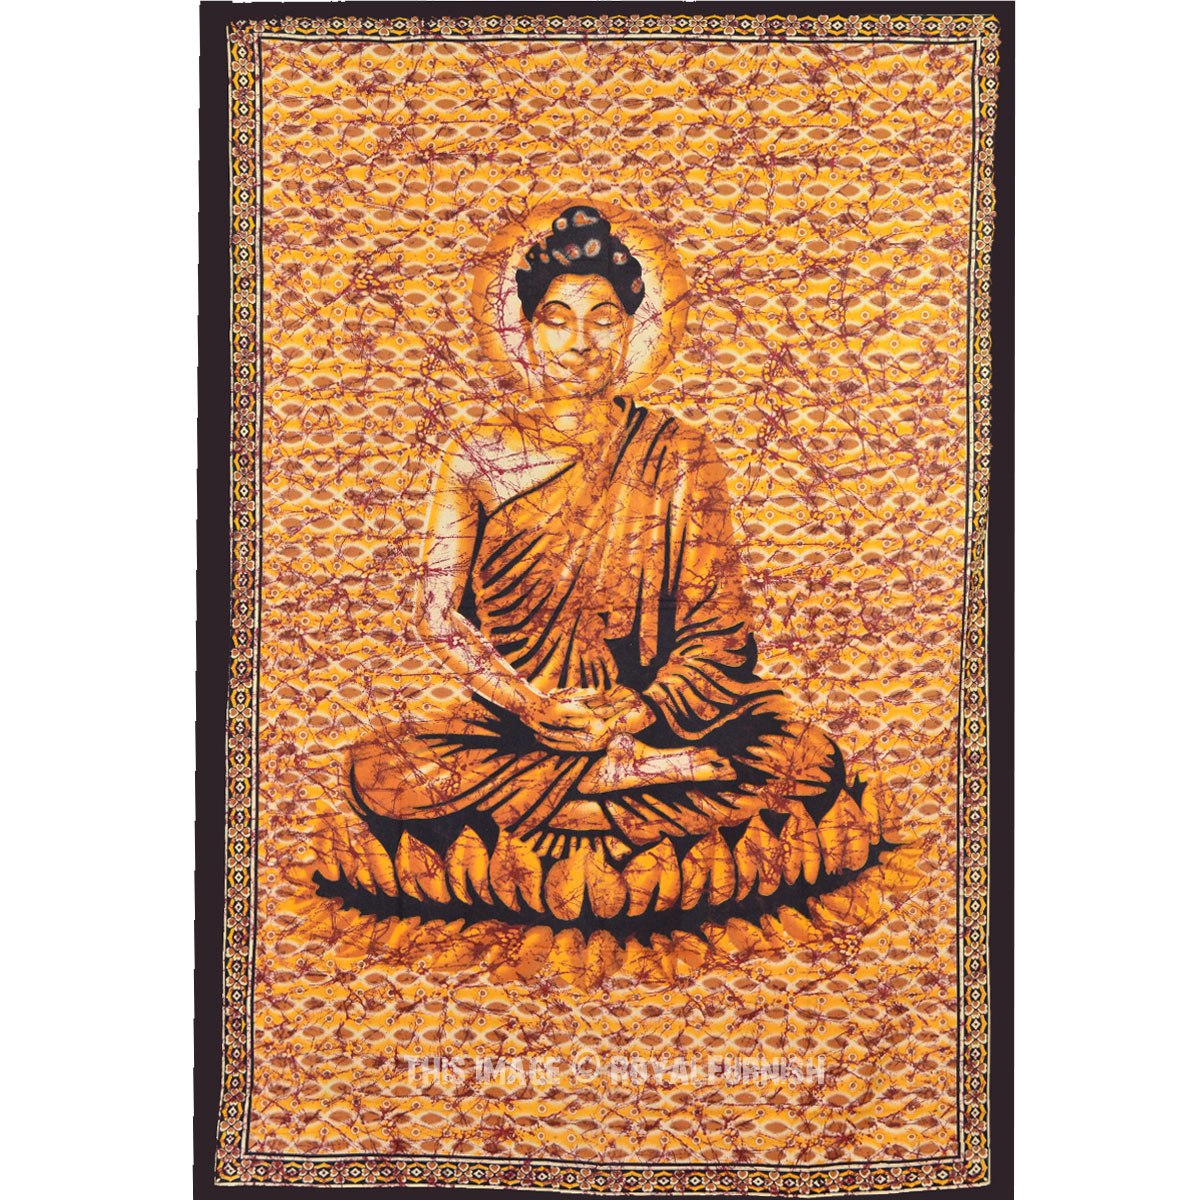 Indian Buddha Canvas Yoga Inspiration Cotton Tapestry Wall ... |Buddha Wall Tapestry